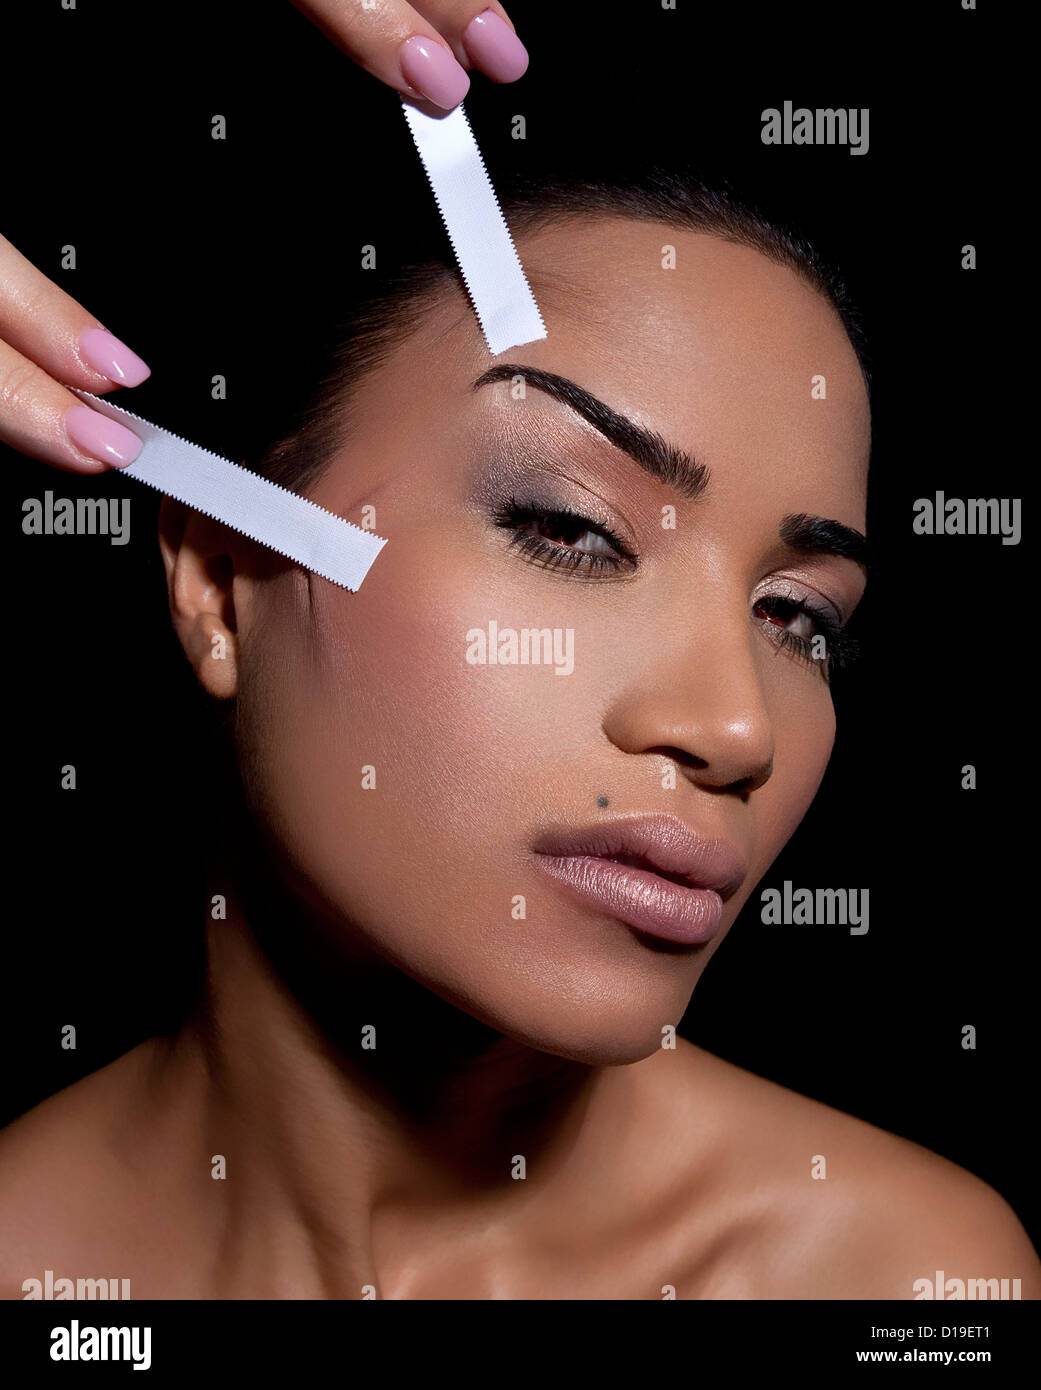 Woman having face lifted with tape - Stock Image